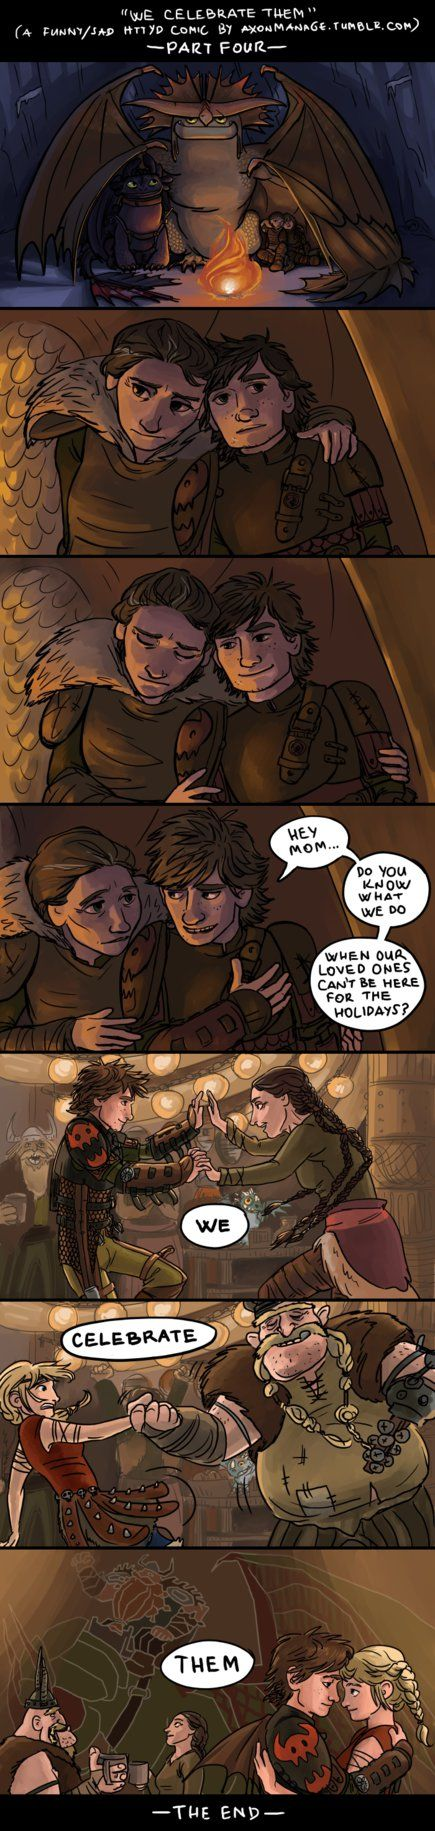 Part Four of a funny/sad HTTYD comic by axondrive on deviantART. People who have seen Gift of the Night Fury will especially appreciate this.